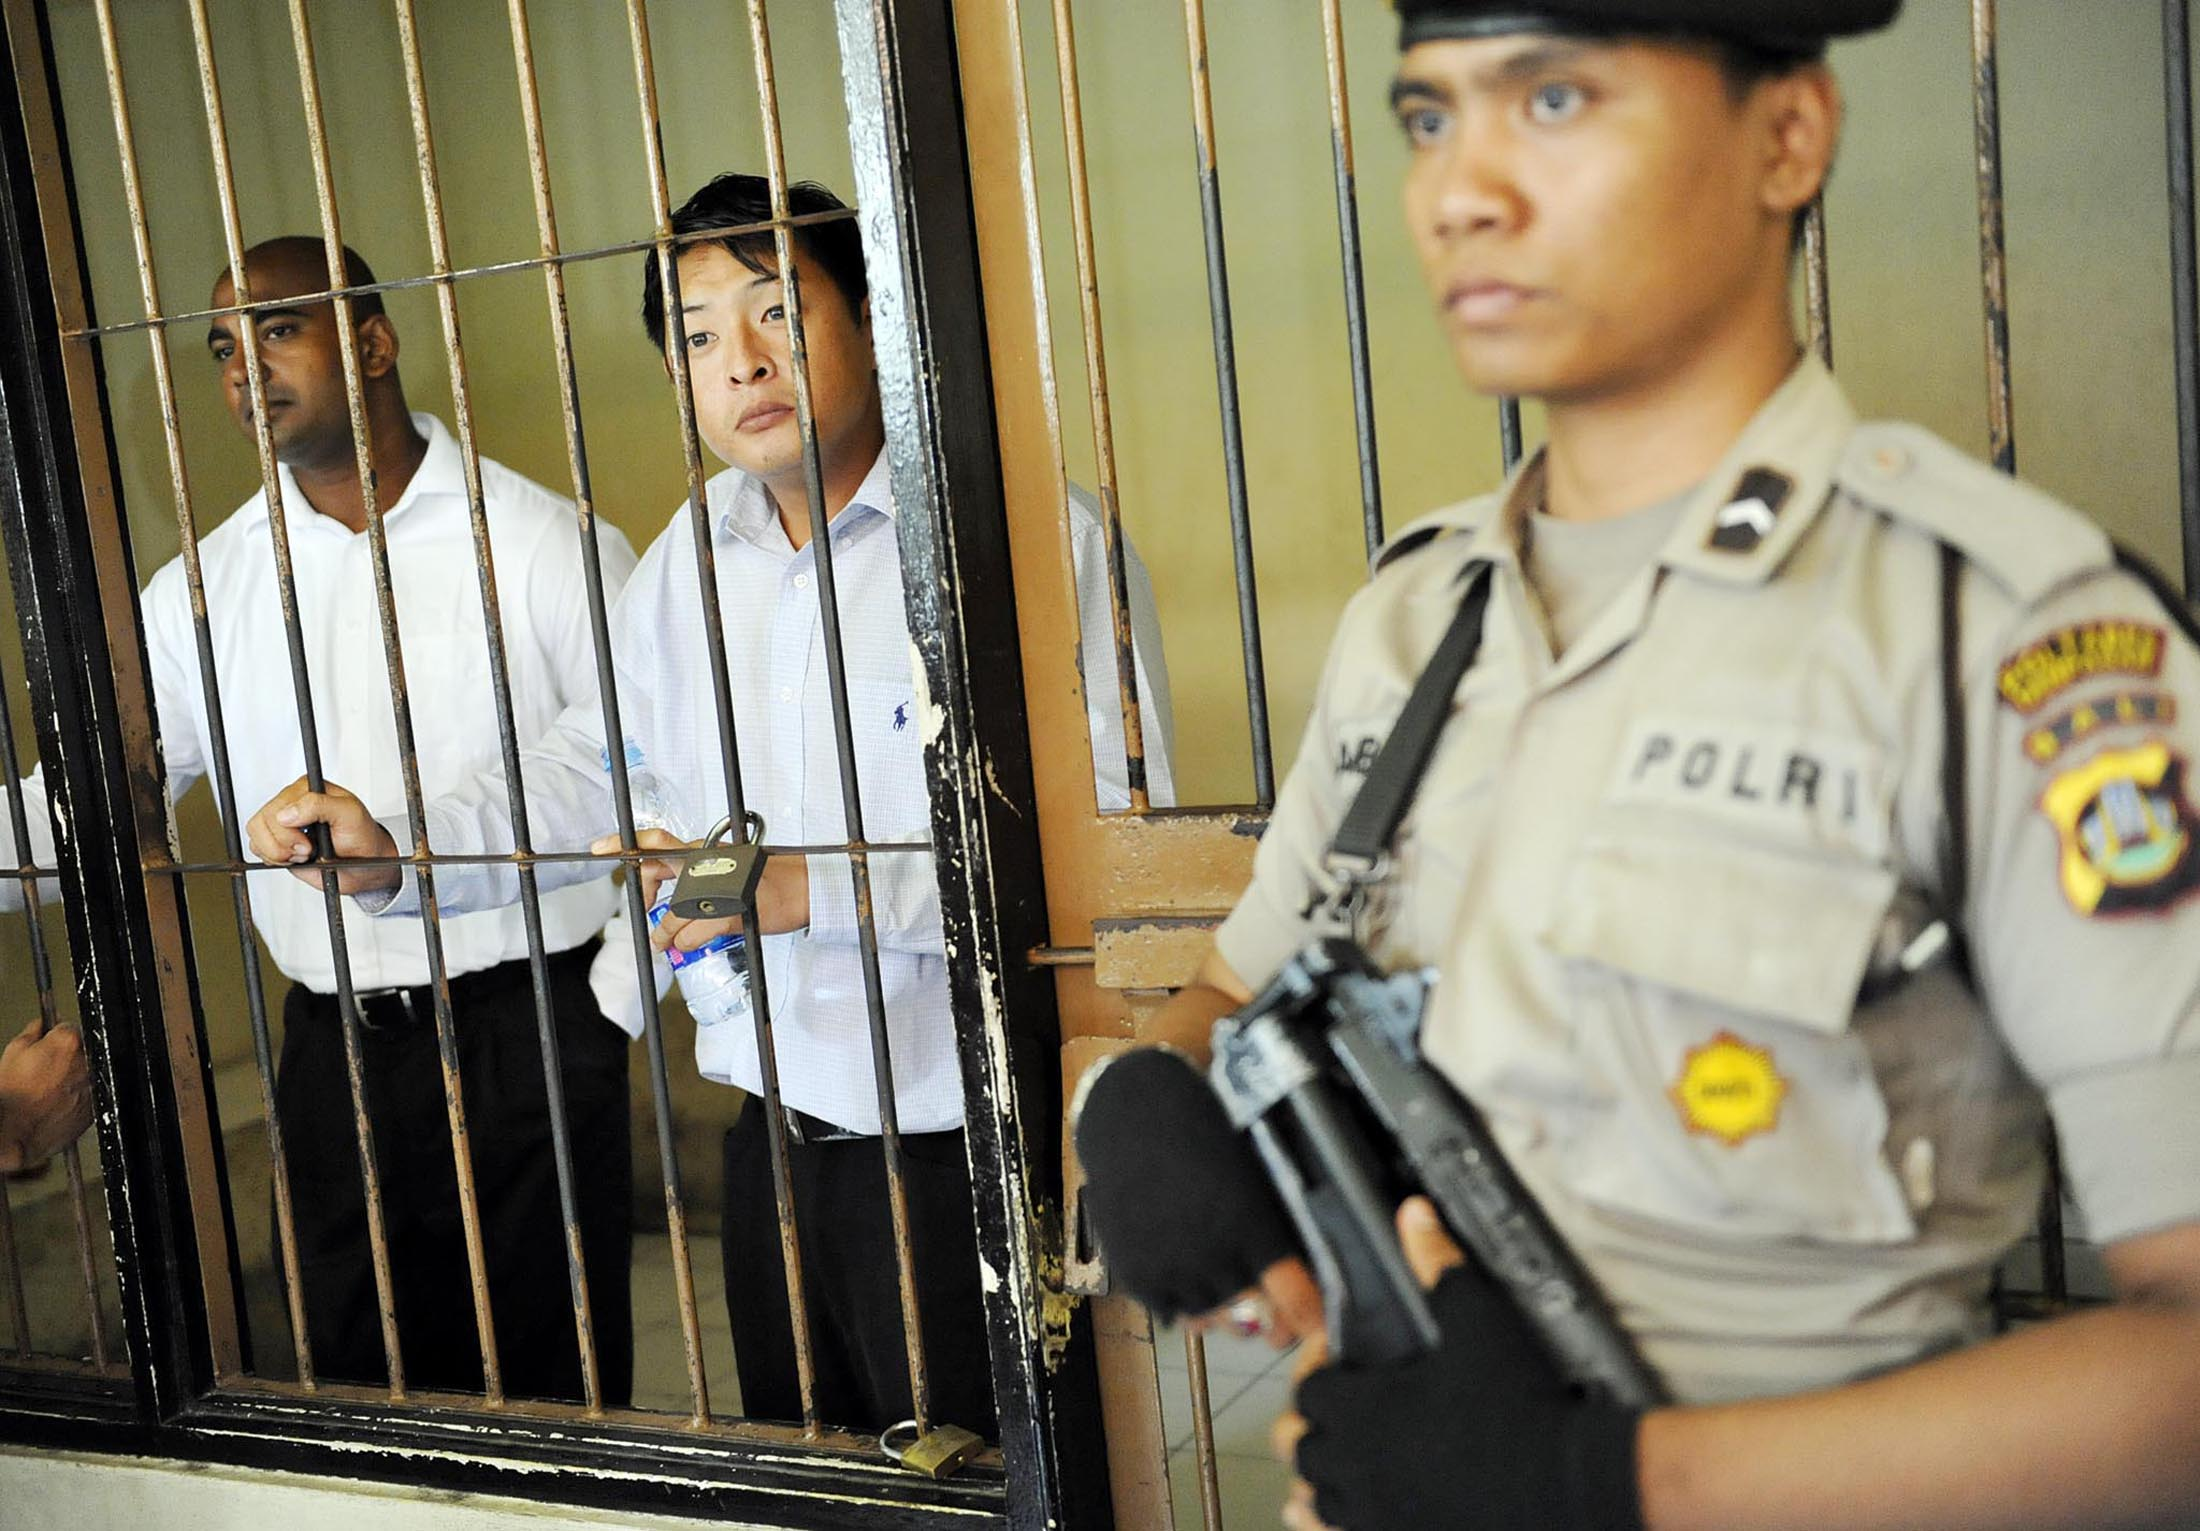 Australian death-row prisoners Andrew Chan, center, and Myuran Sukumaran, left, are seen in a holding cell waiting to attend a review hearing in the District Court of Denpasar, on the Indonesian island of Bali, on Oct. 8, 2010